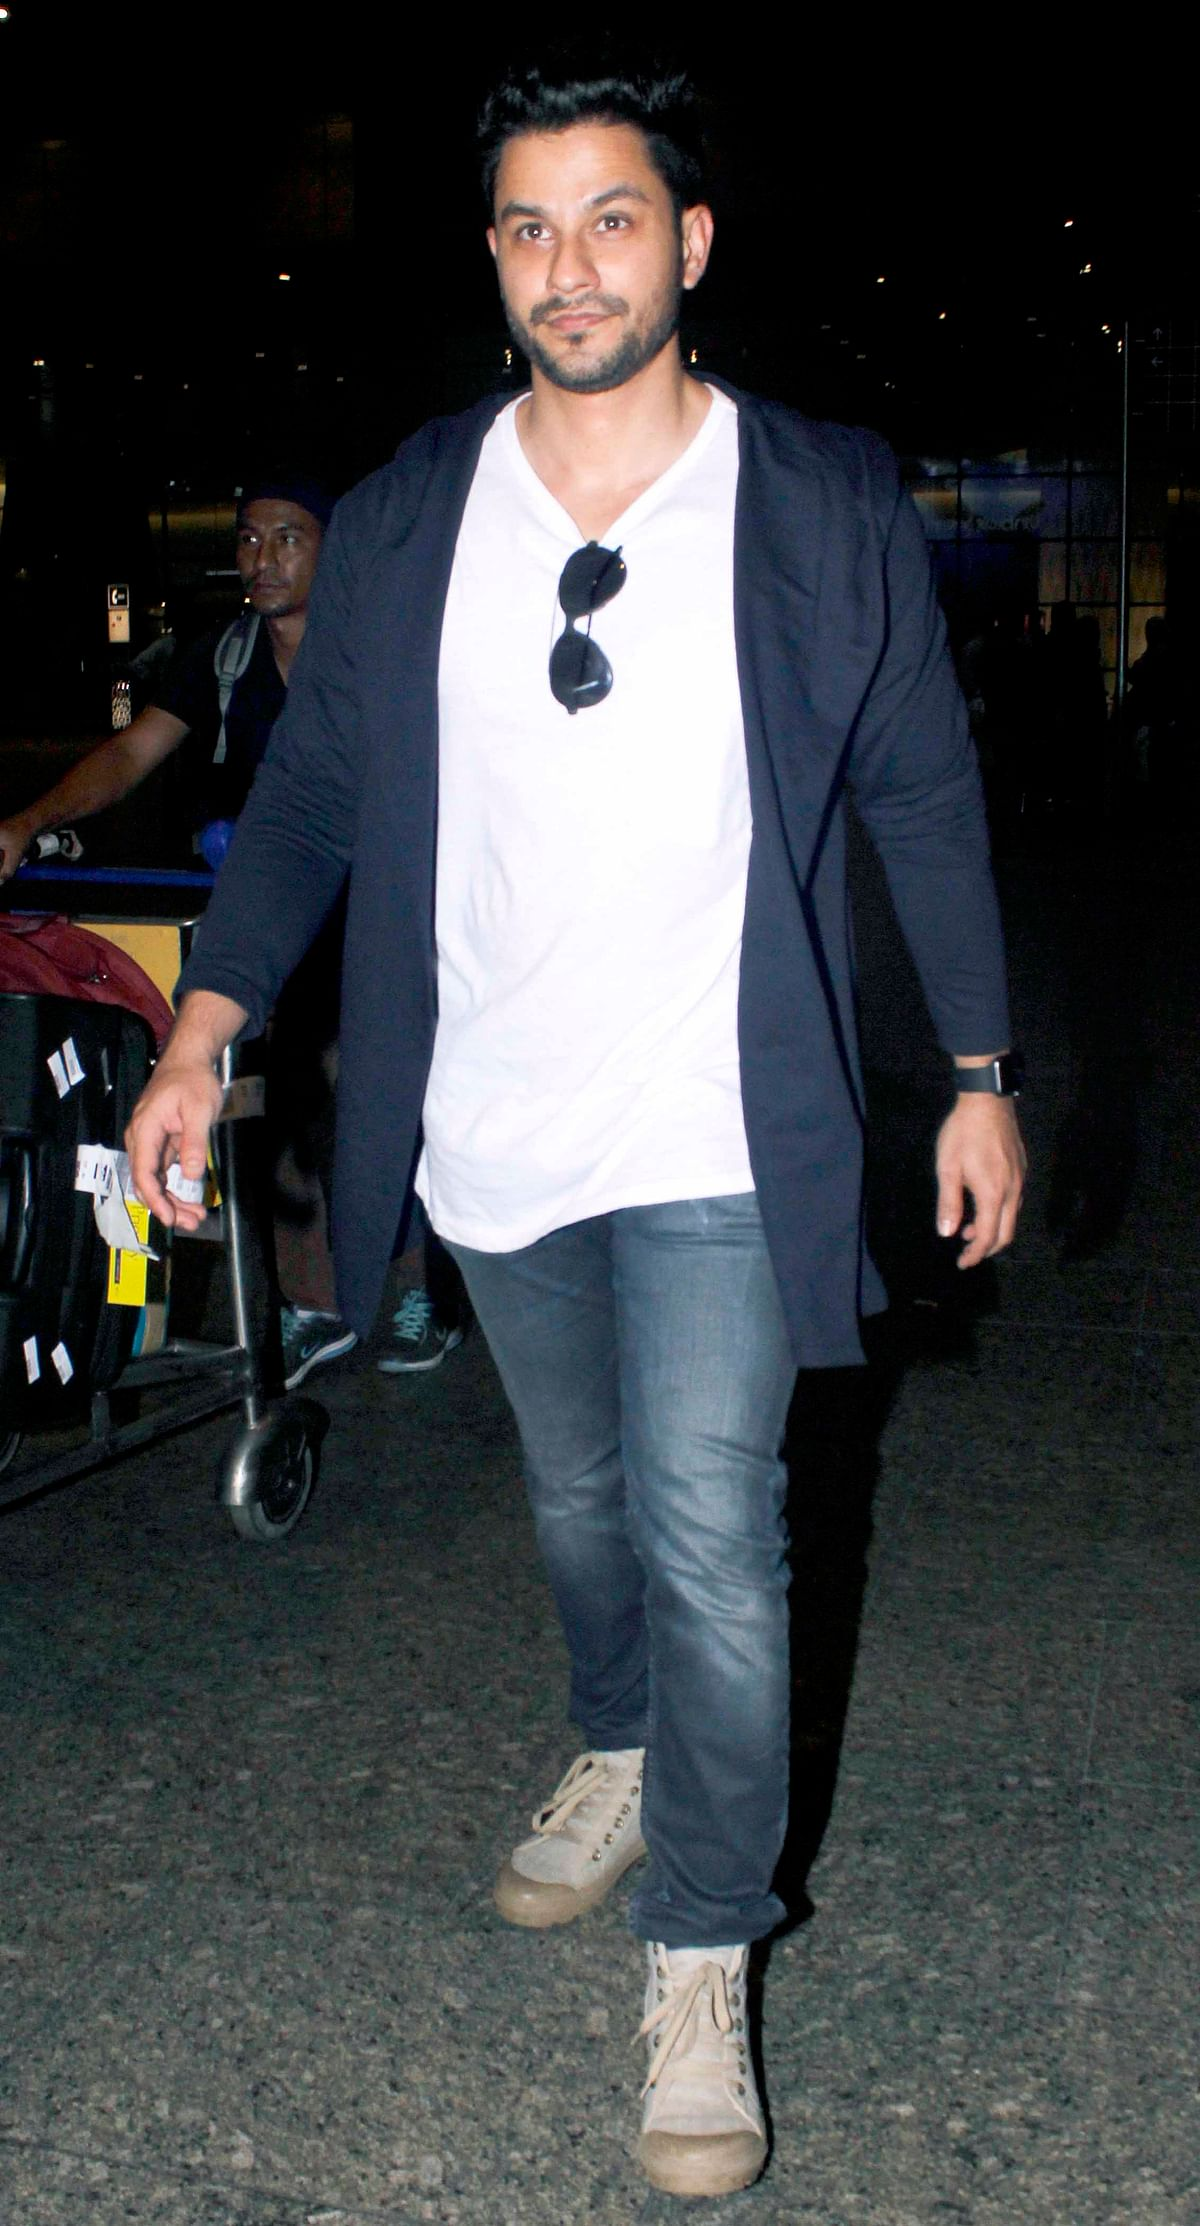 Daddy-to-be Kunal Khemu at the airport. (Photo: Yogen Shah)